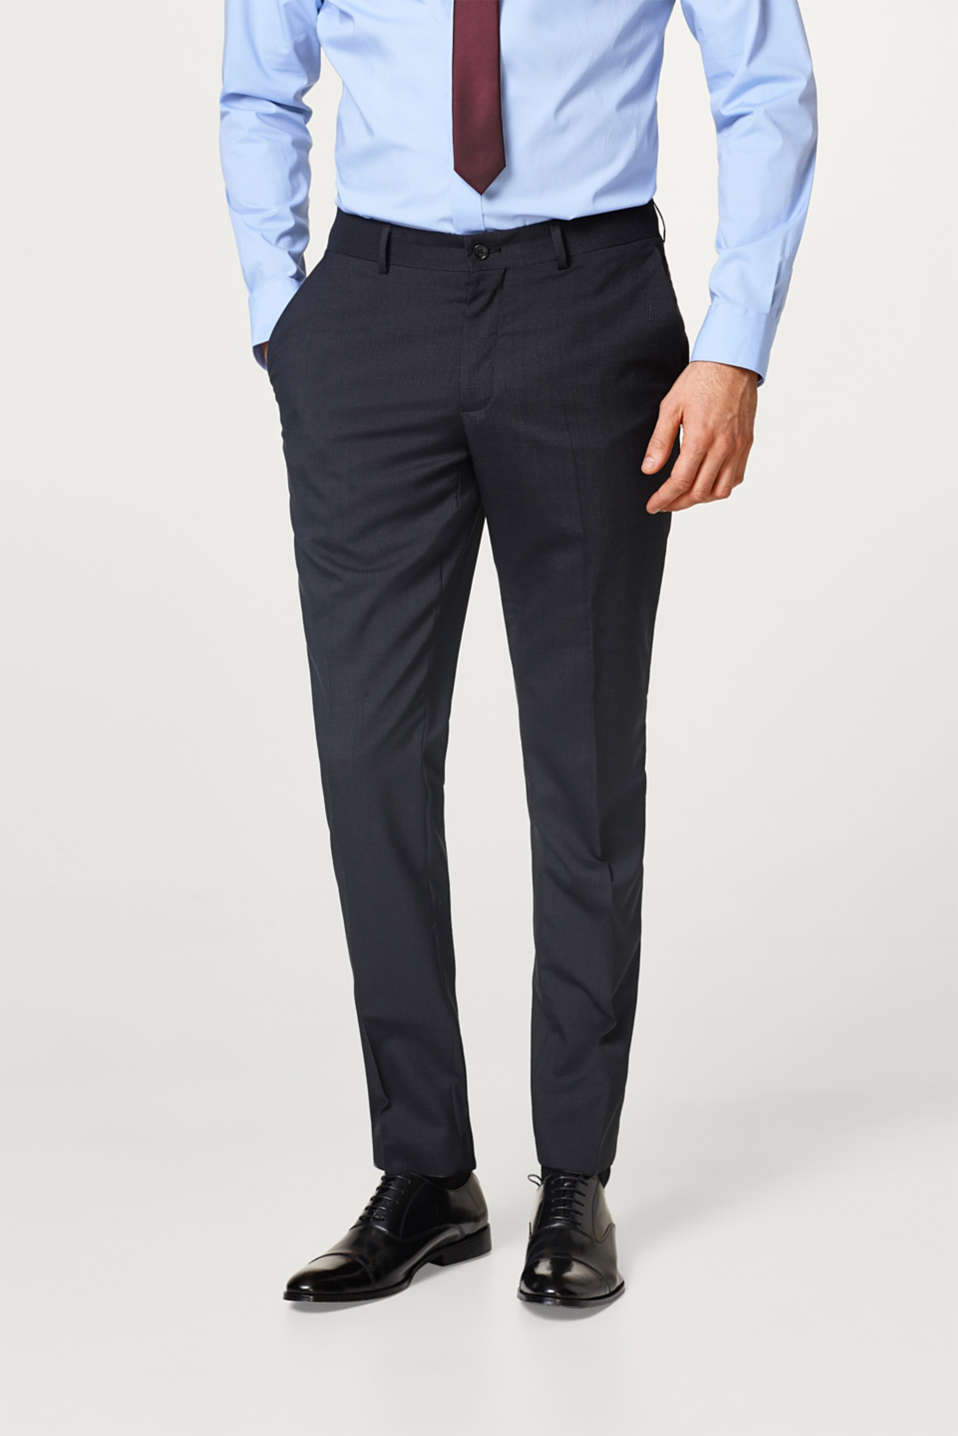 Esprit - Suit trousers + check pattern, blended wool